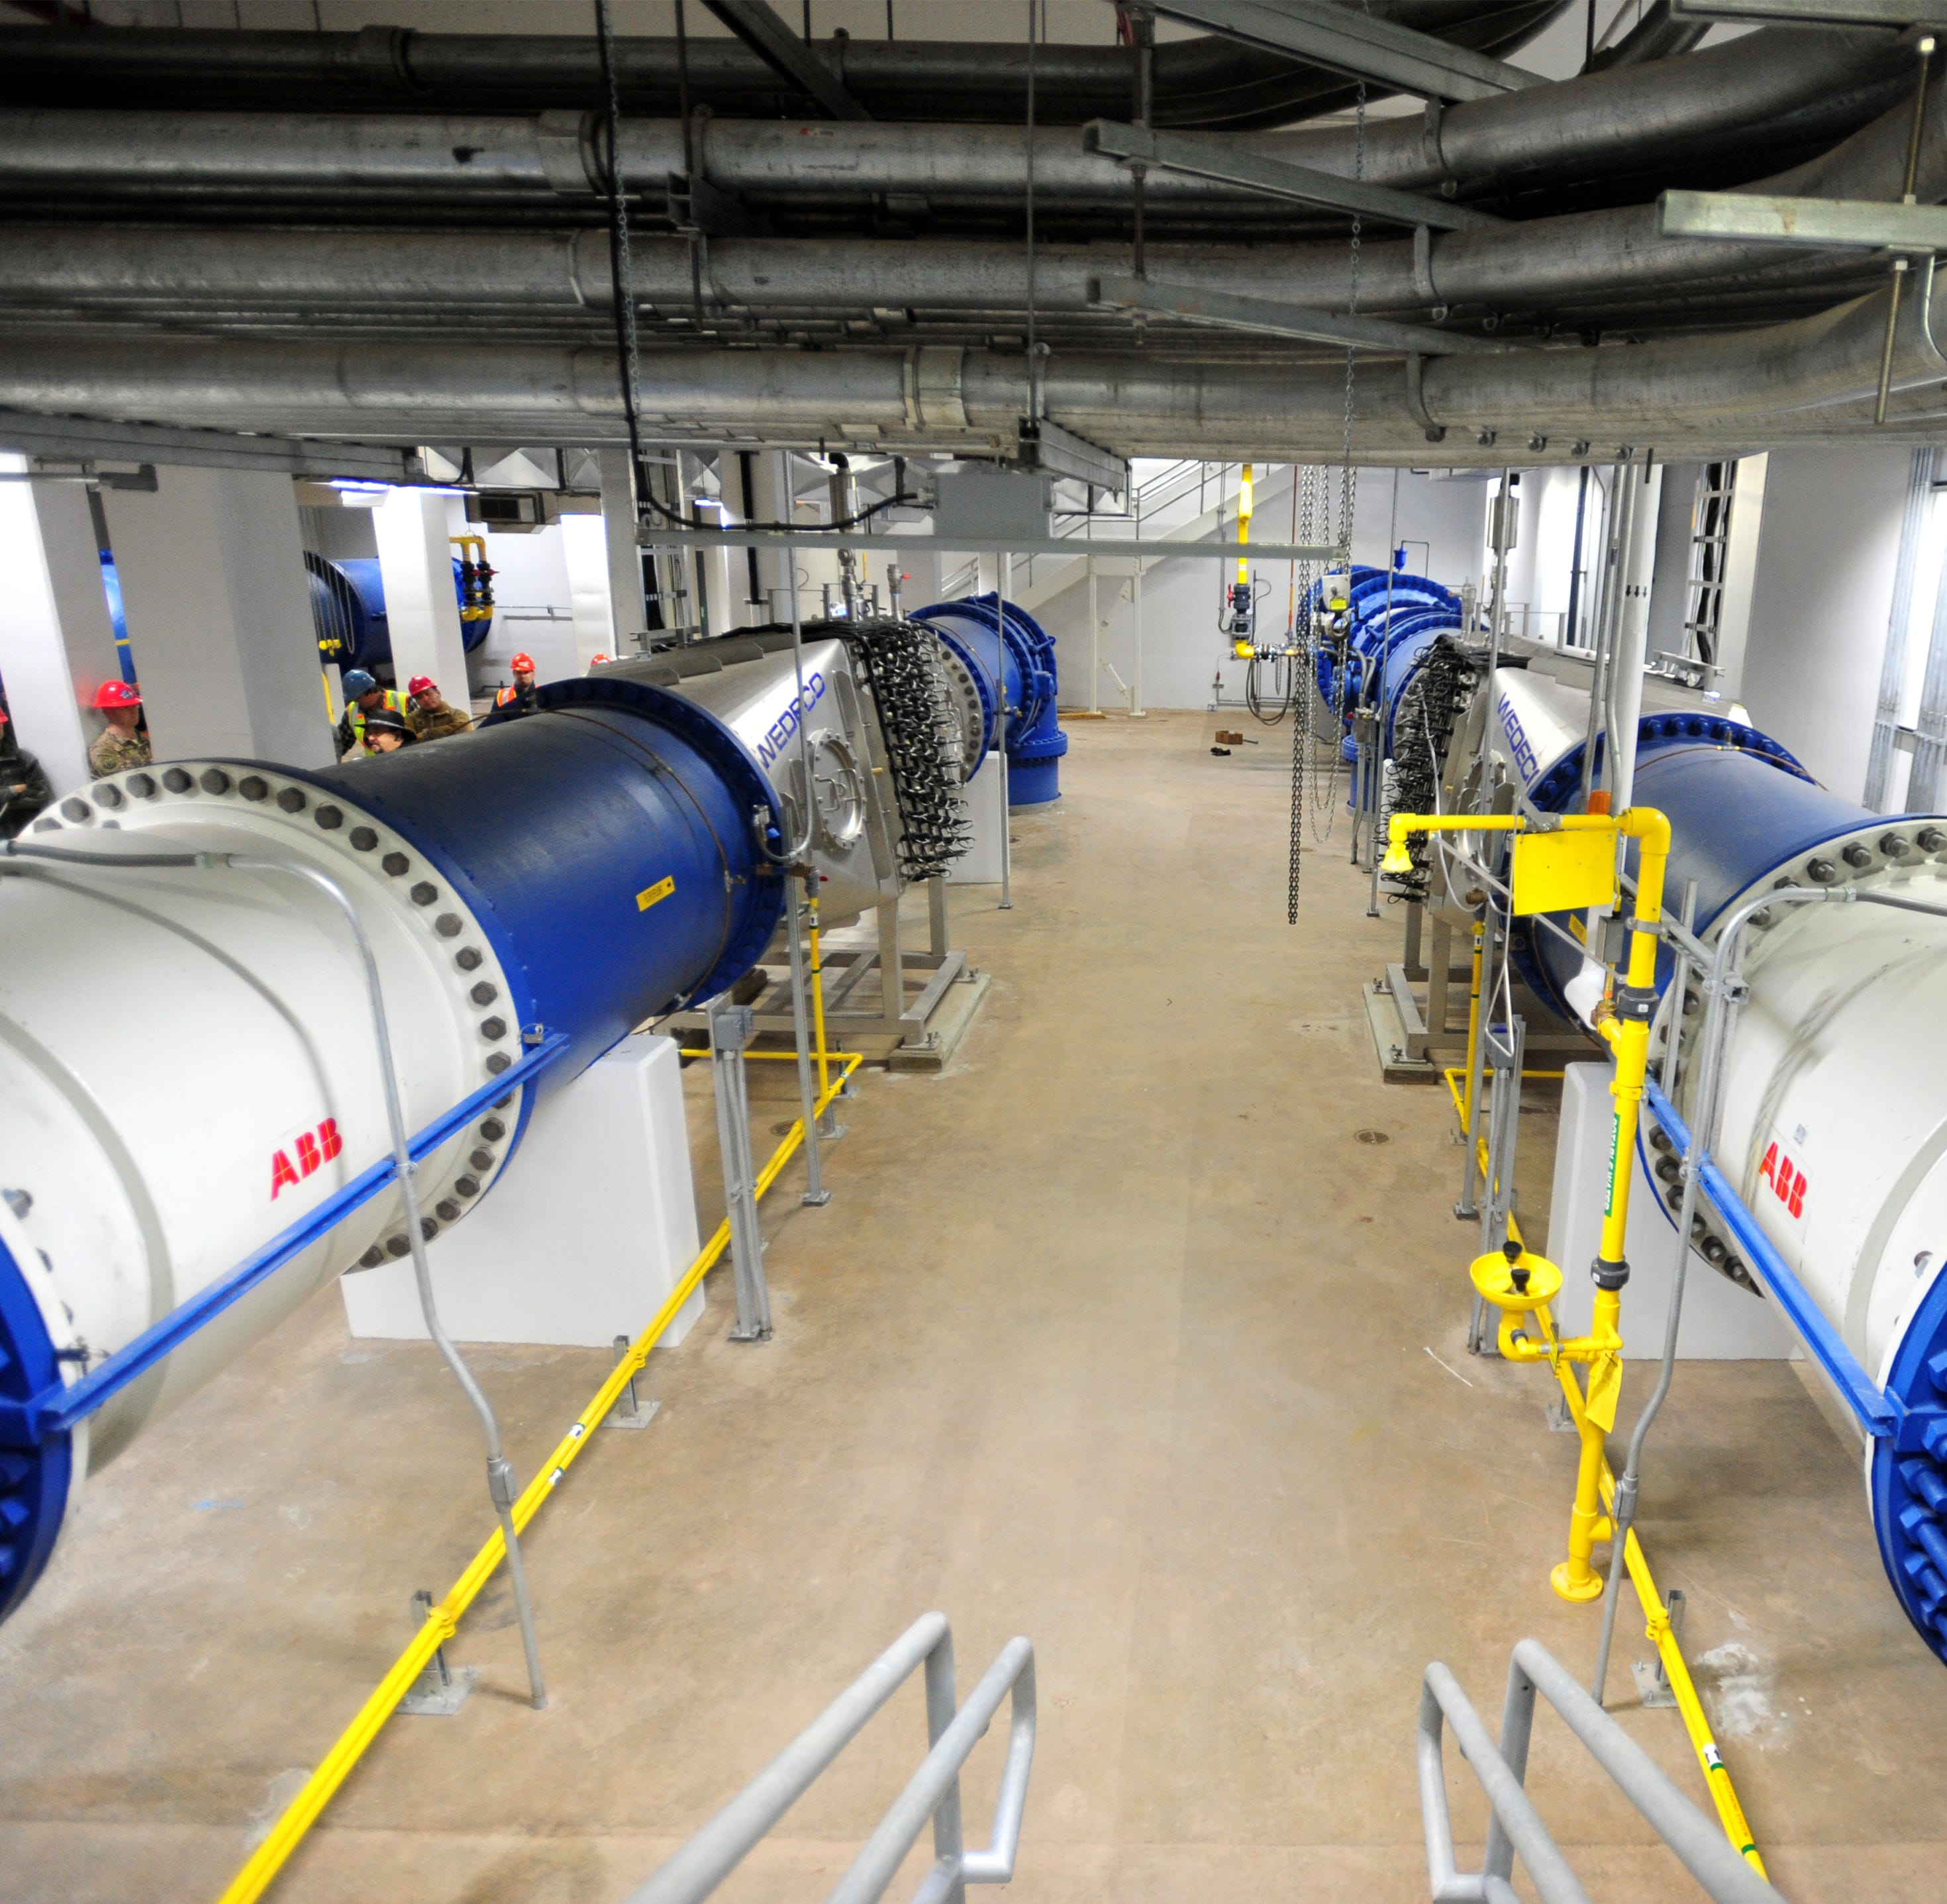 Two water pipes deliver up to 54 million gallons of water per day, combined, to two new ultra violet purification system reactors at the City of Great Falls Water Treatment Plant.